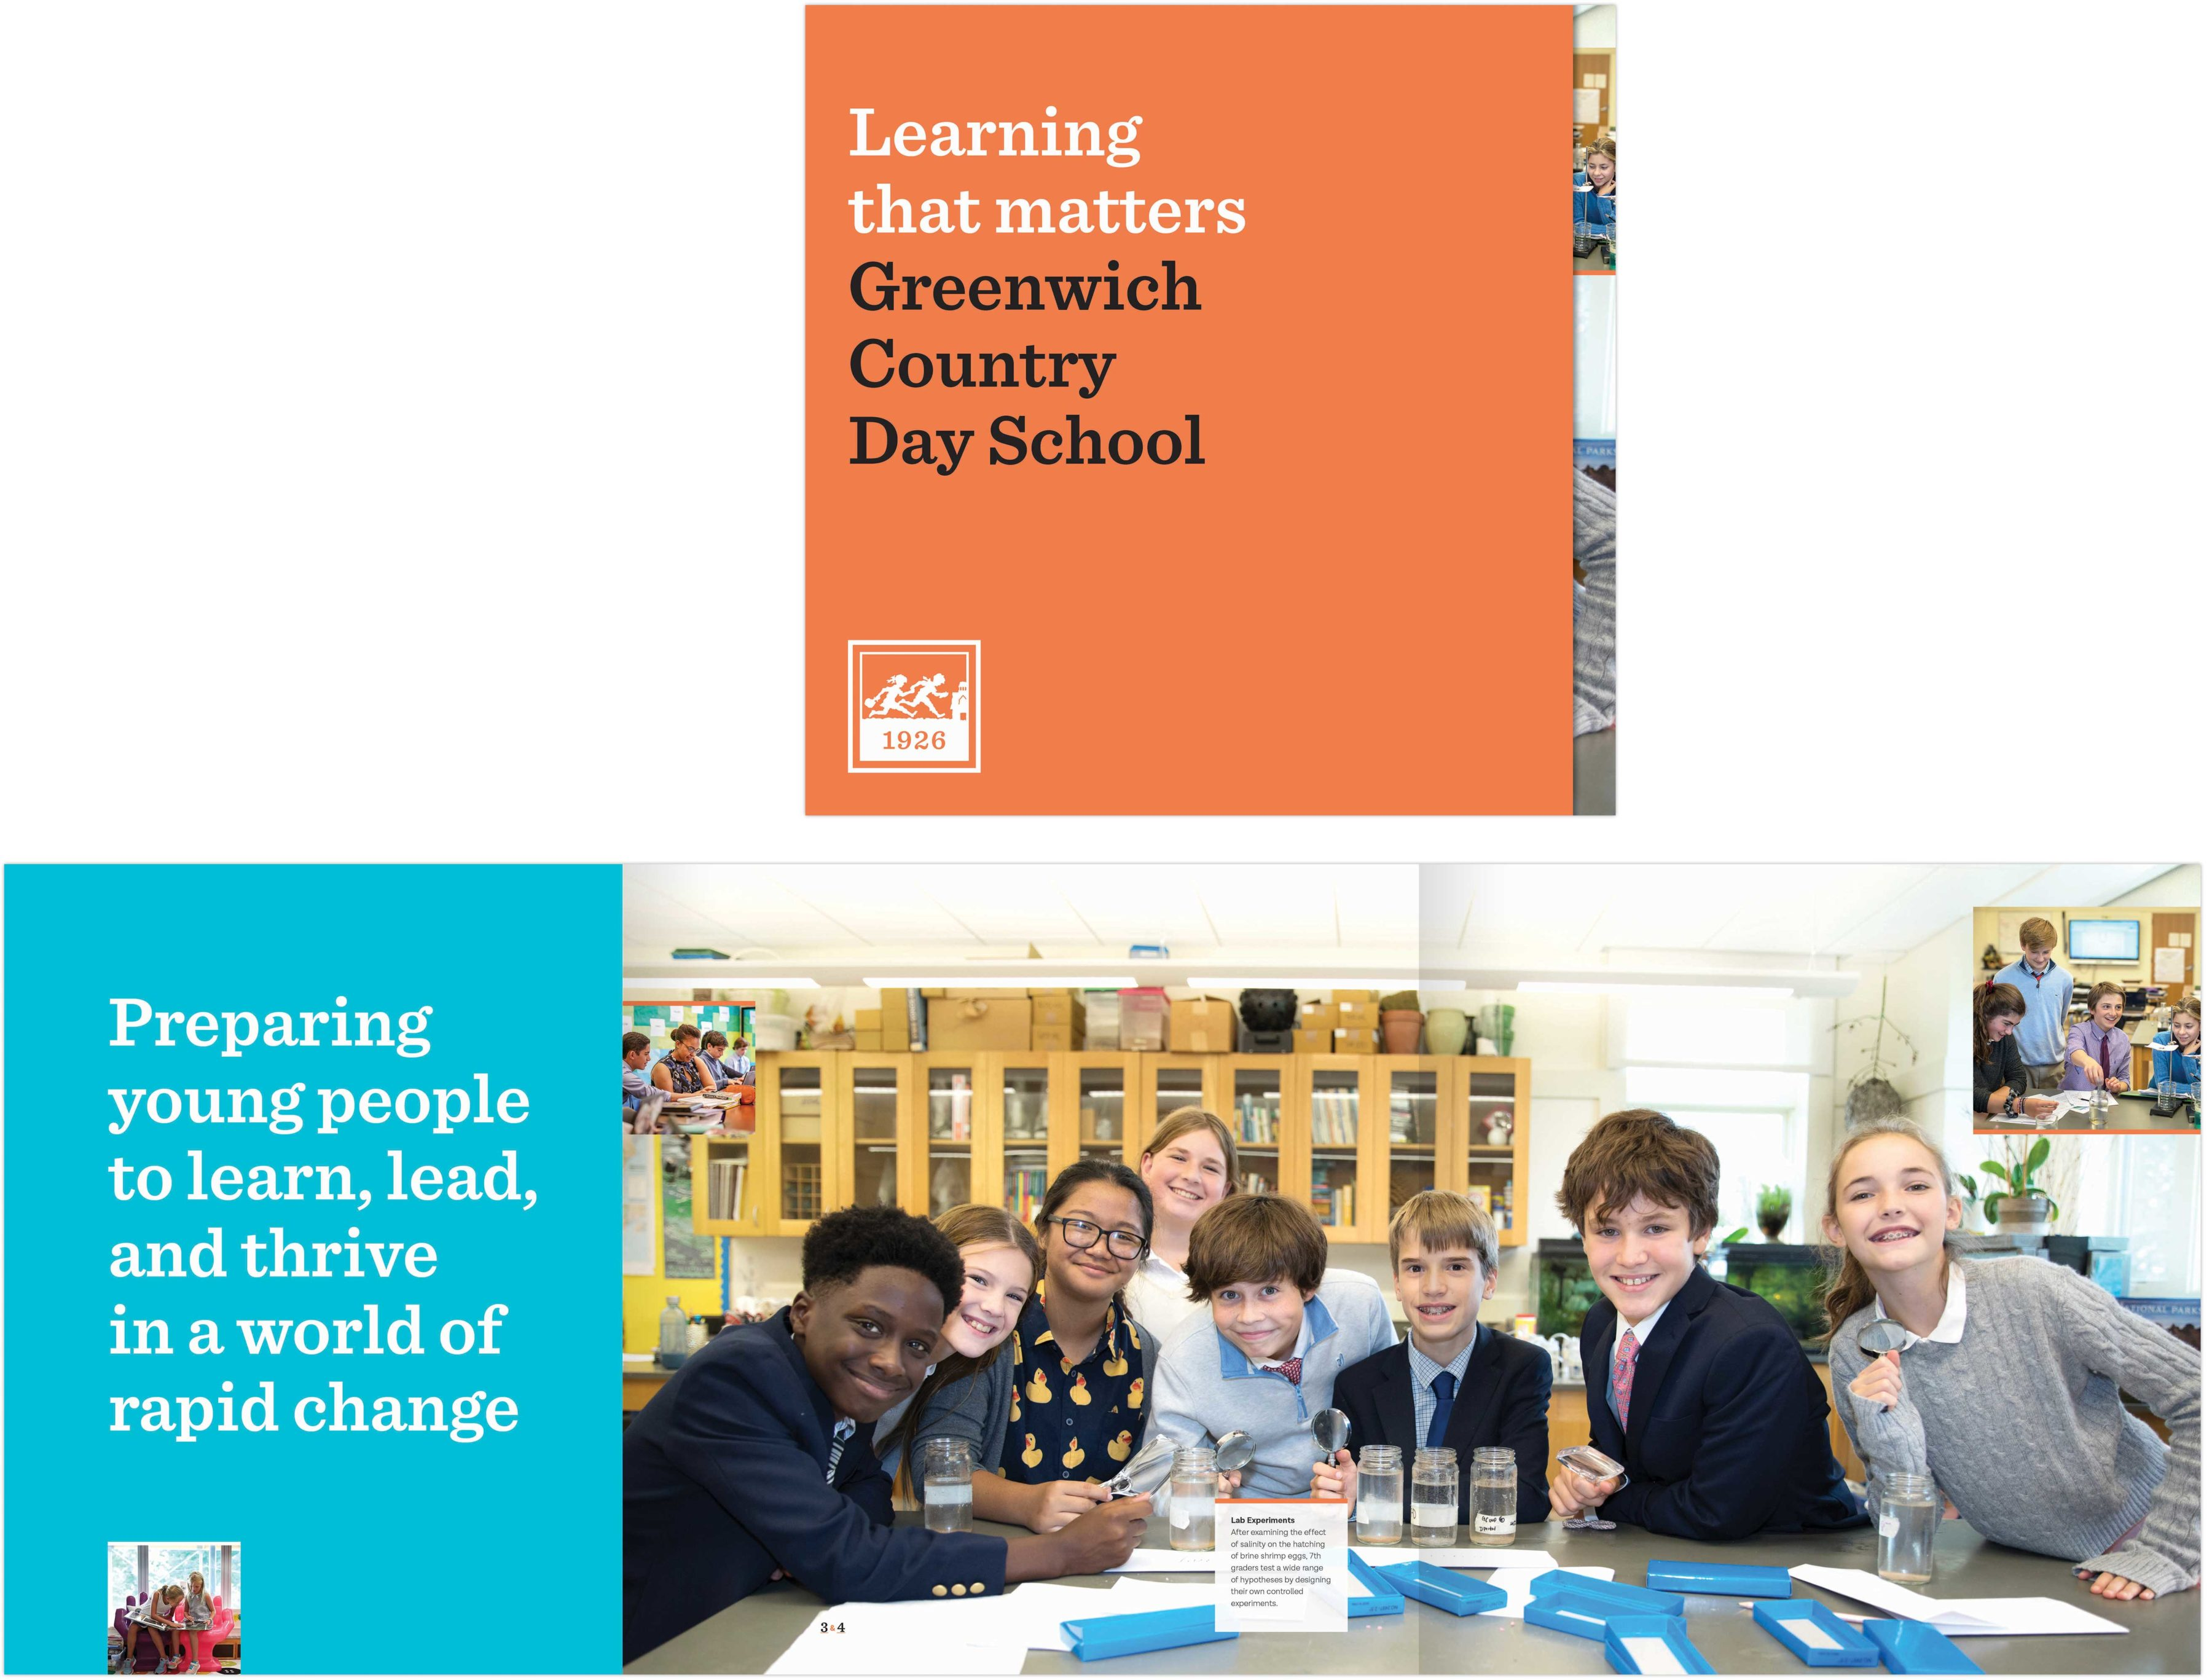 greenwich country day school view book cover and spread